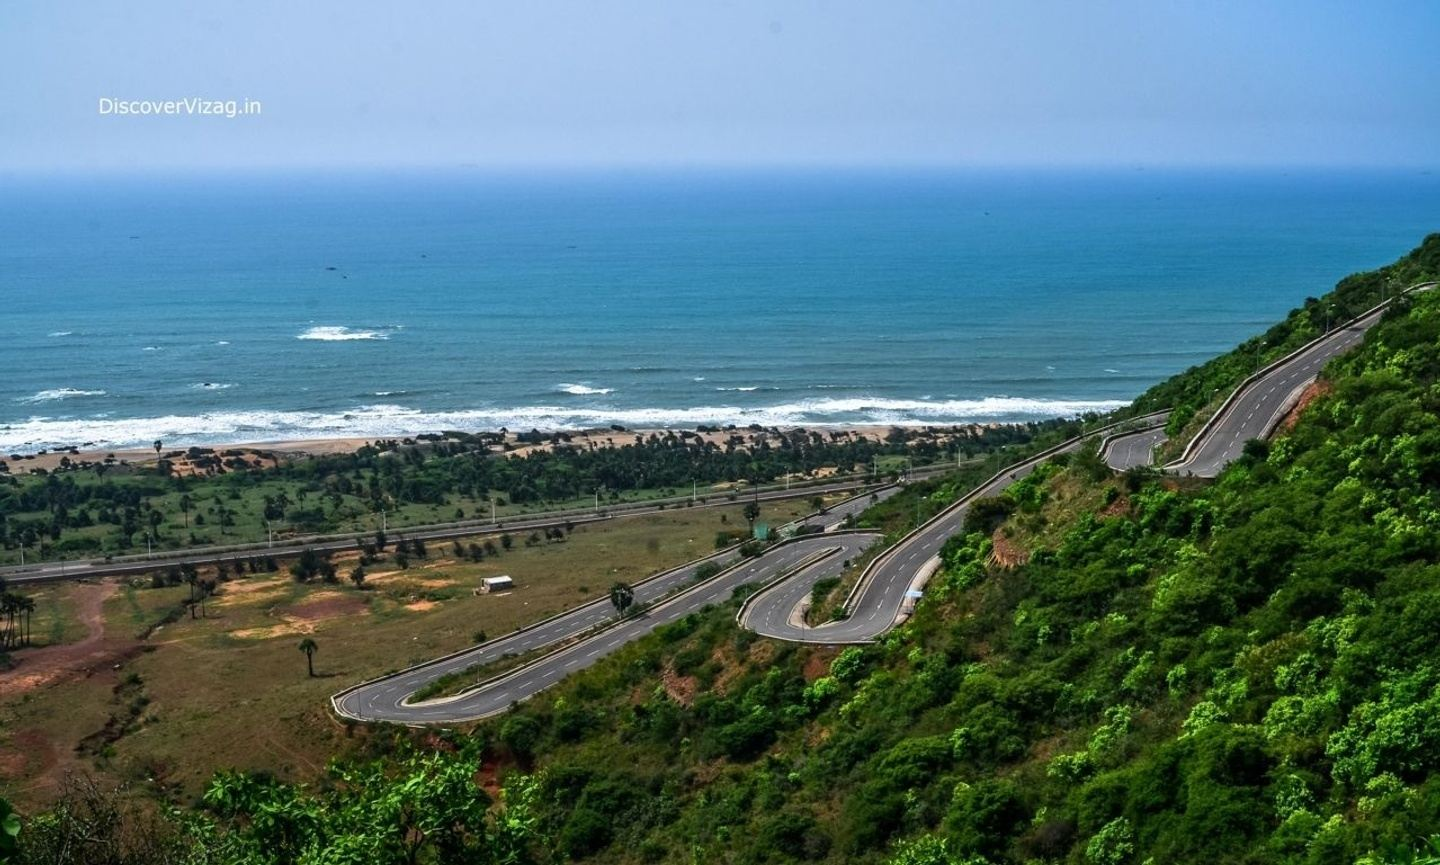 Top 4 Tourist Attractions in Visakhapatnam